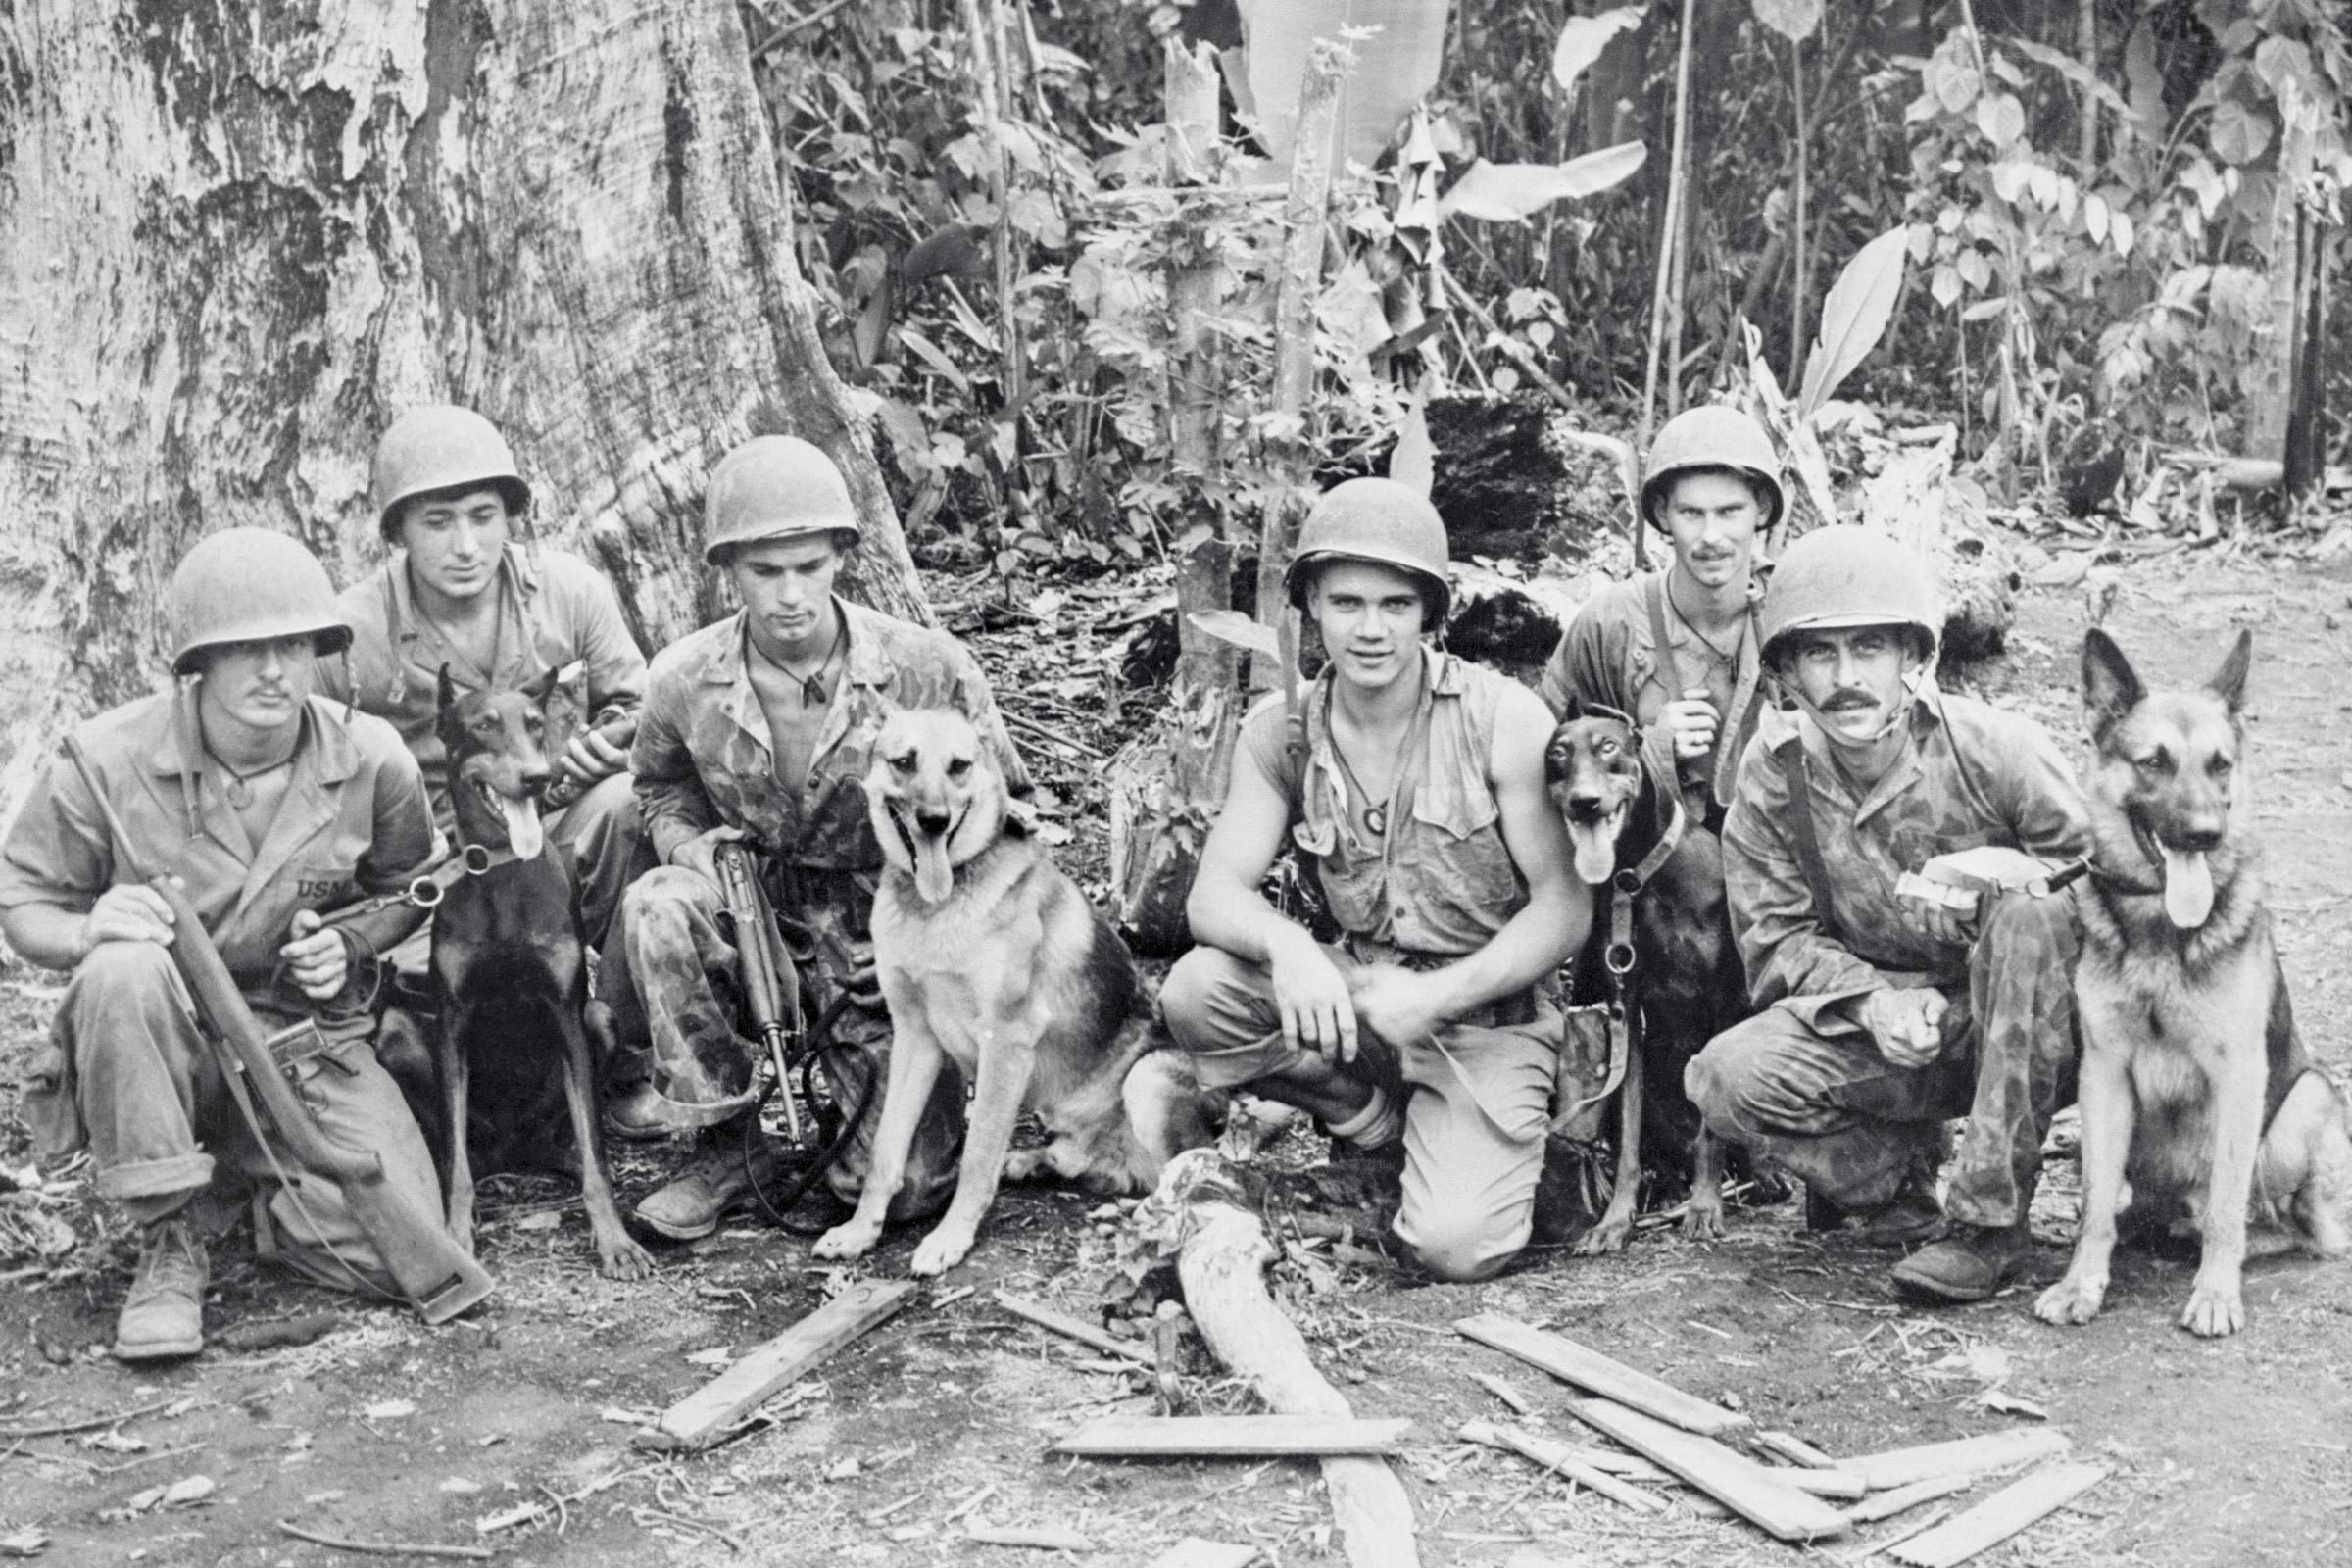 war dogs and their handlers